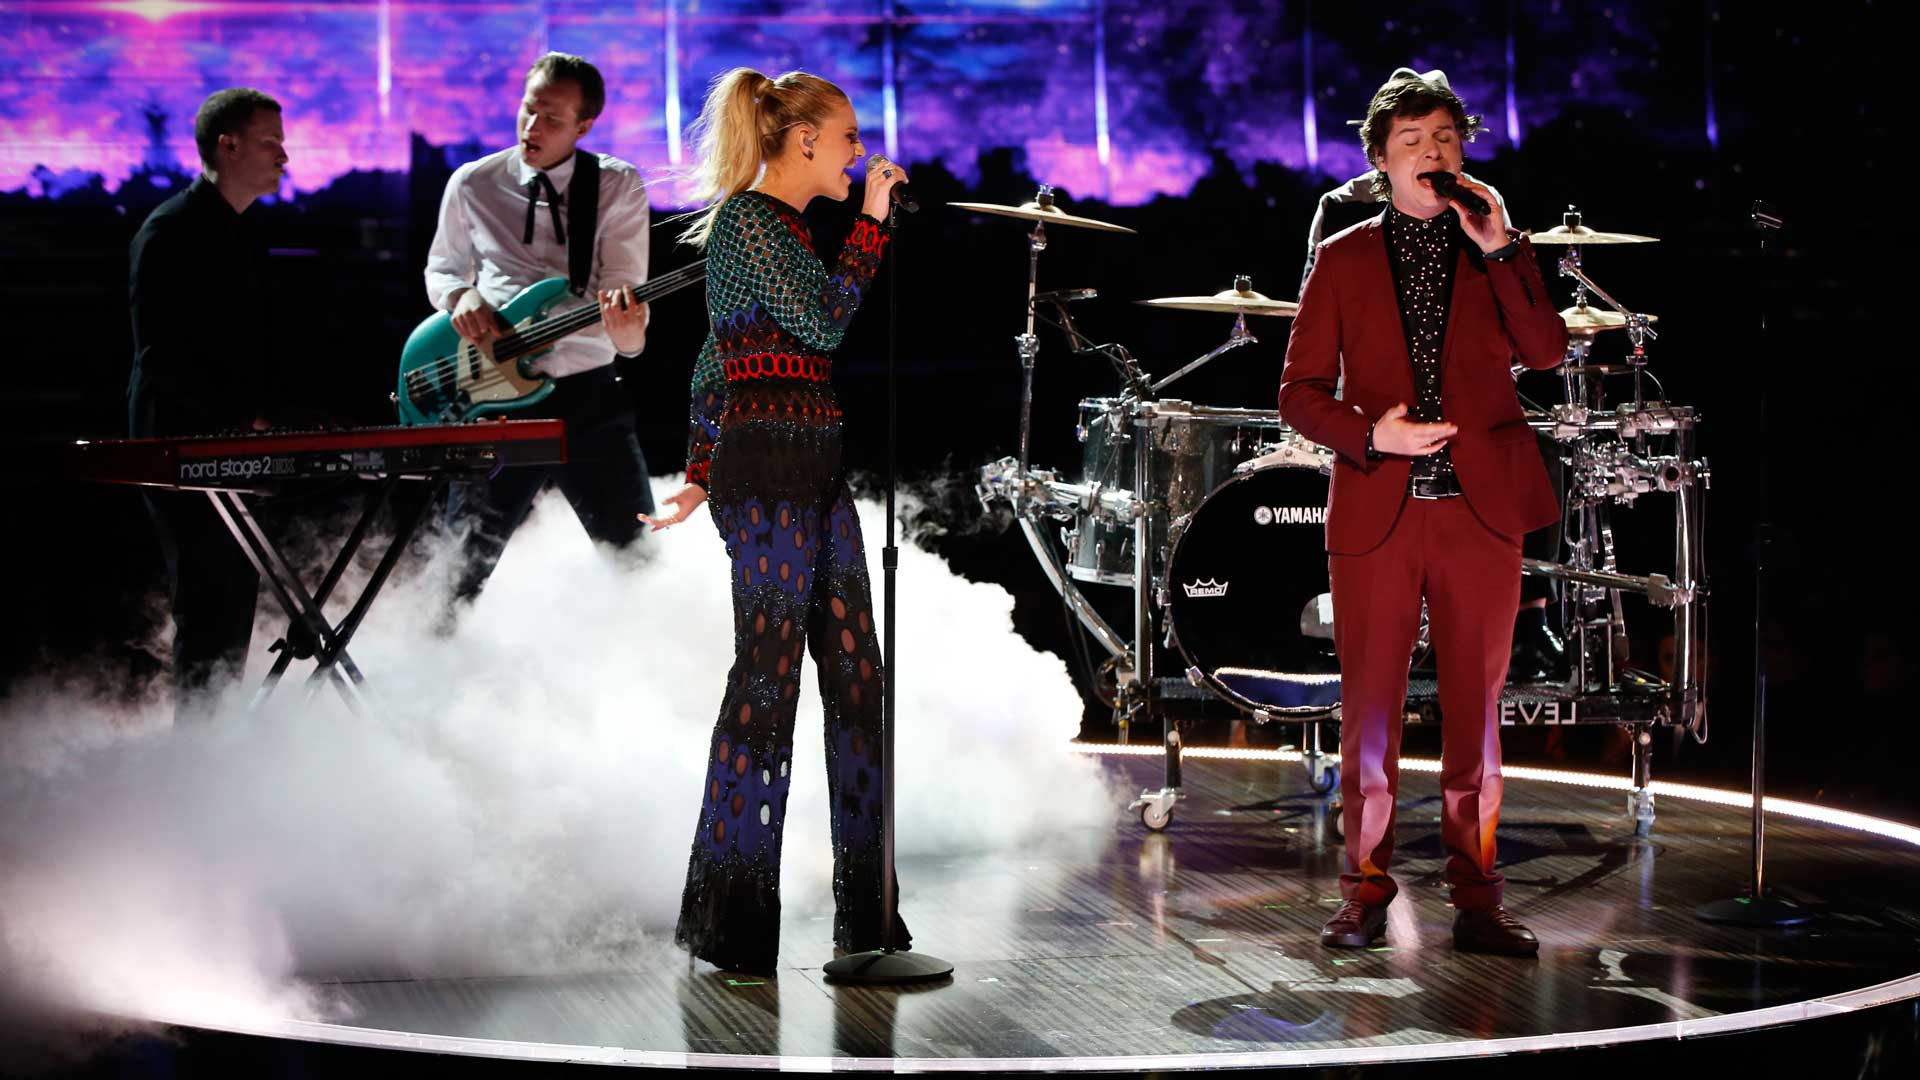 Kelsea Ballerini and Lukas Graham perform a mashup of